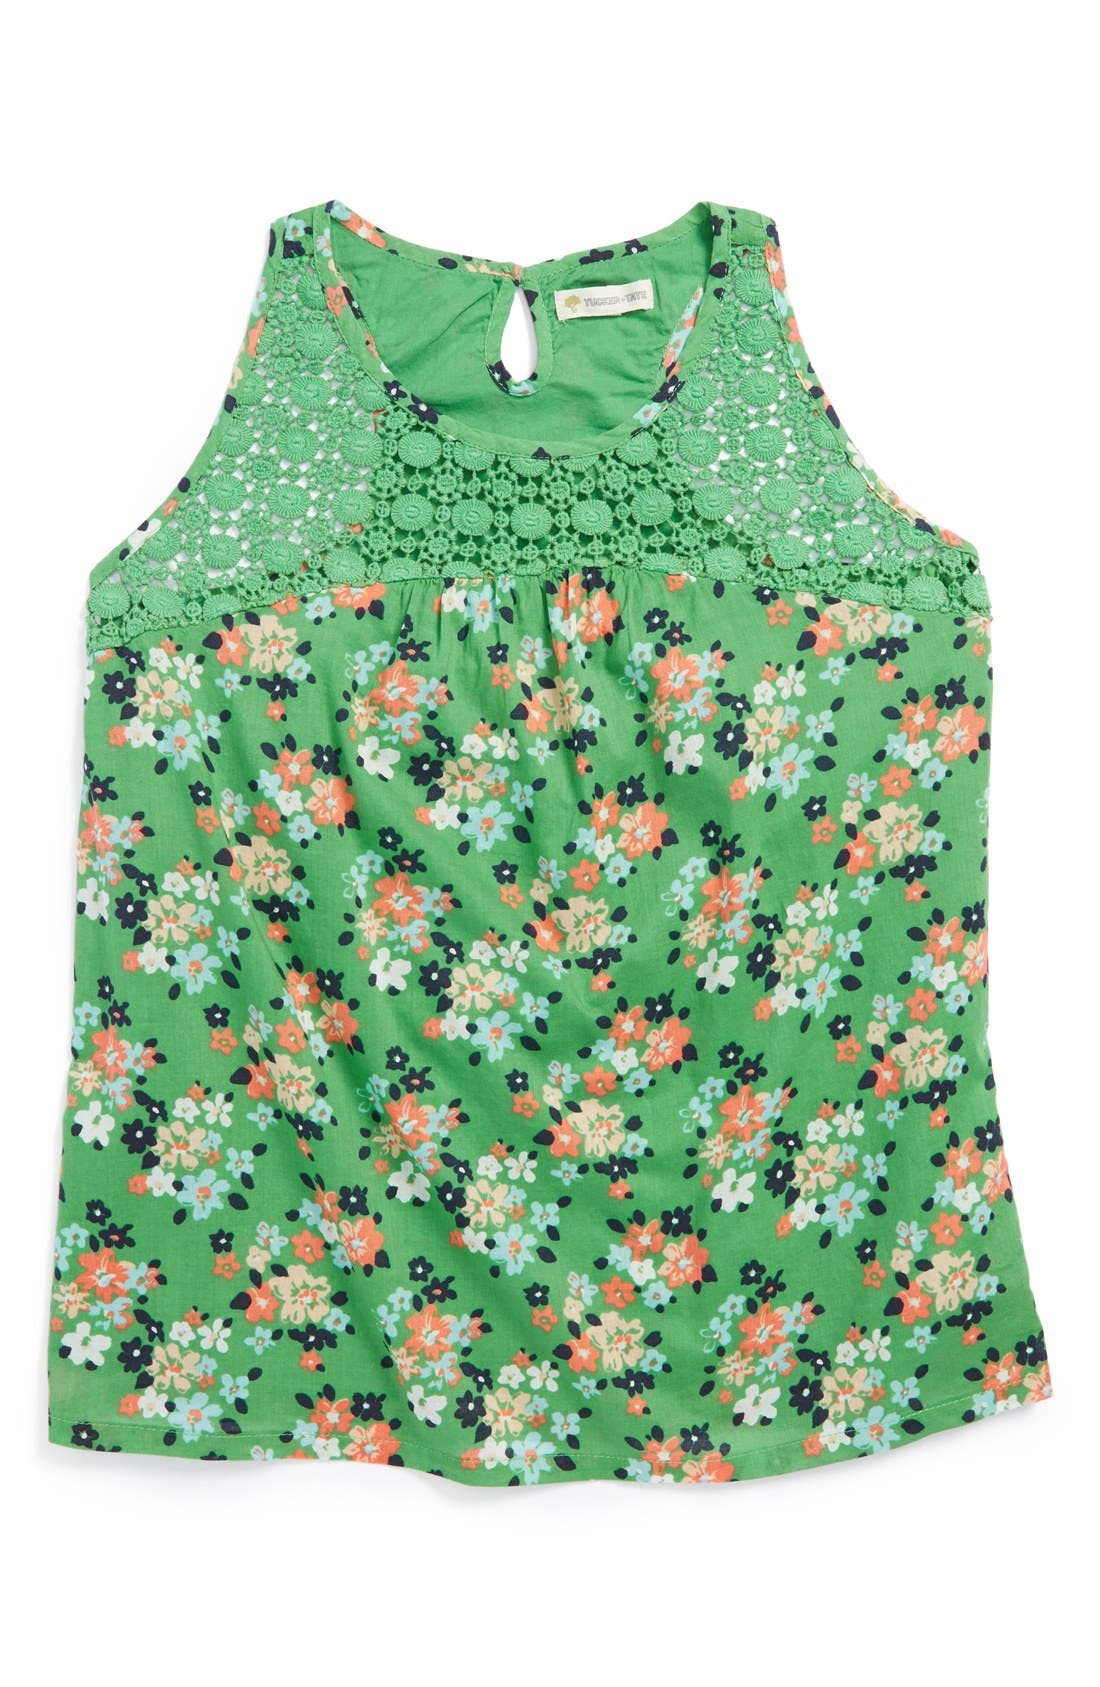 Alternate Image 1 Selected - Tucker + Tate 'Lily' Sleeveless Top (Big Girls)